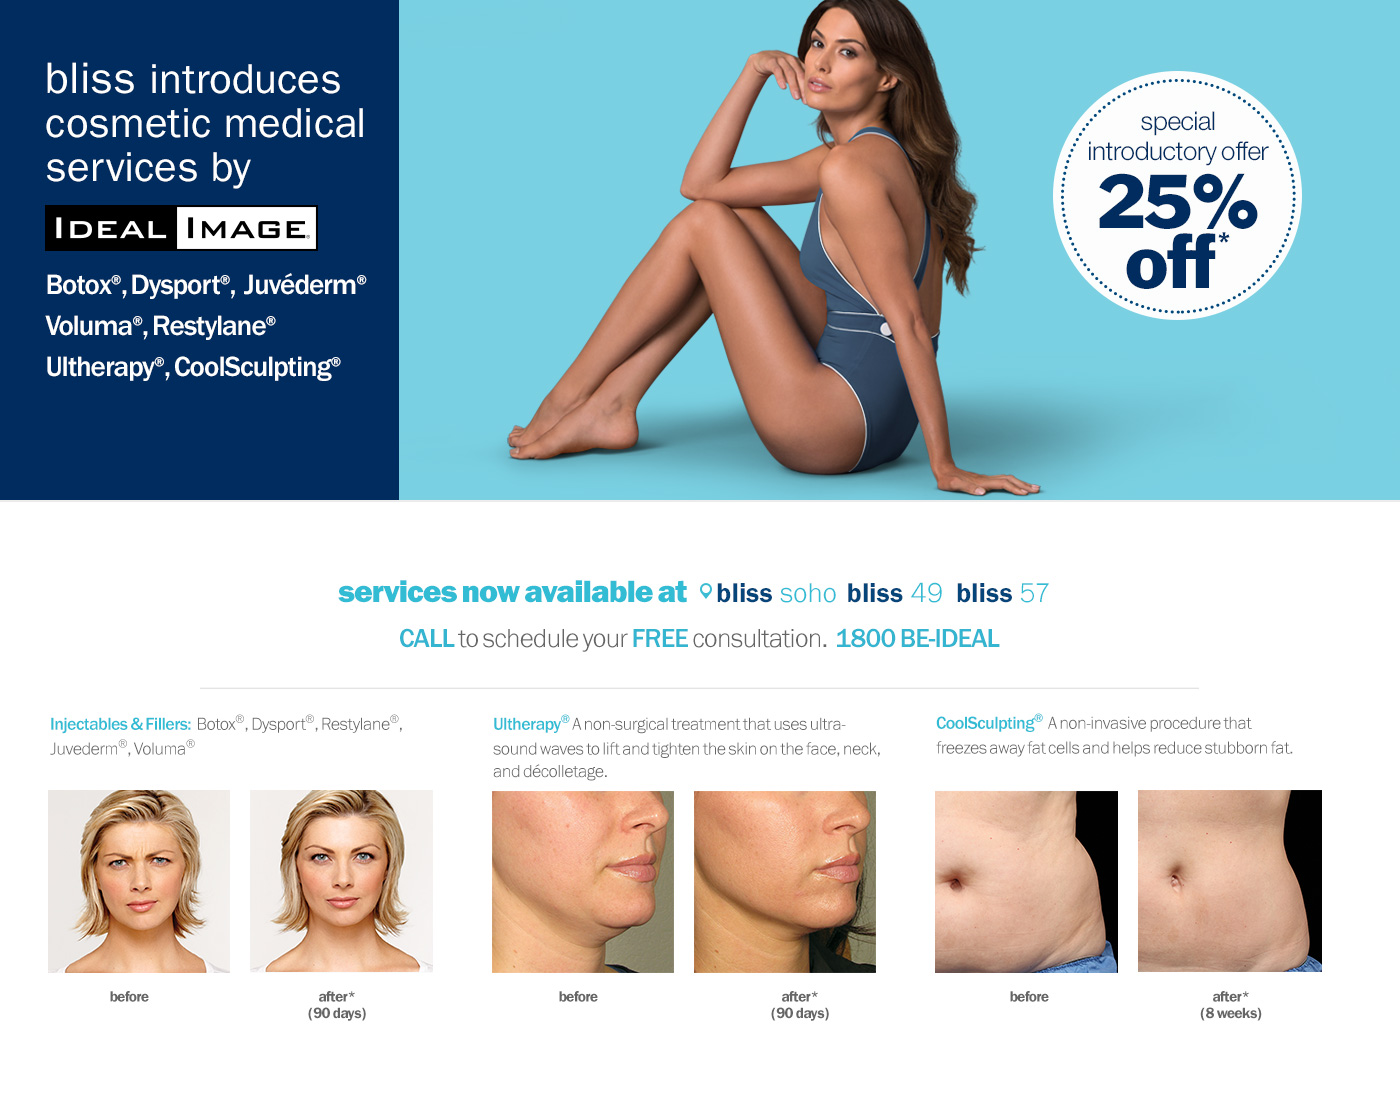 ideal image cosmetic medical services at bliss spa: Botox, Dysport, Juviderm, Voluma, Restylane, Ultherapy, CoolScuplting